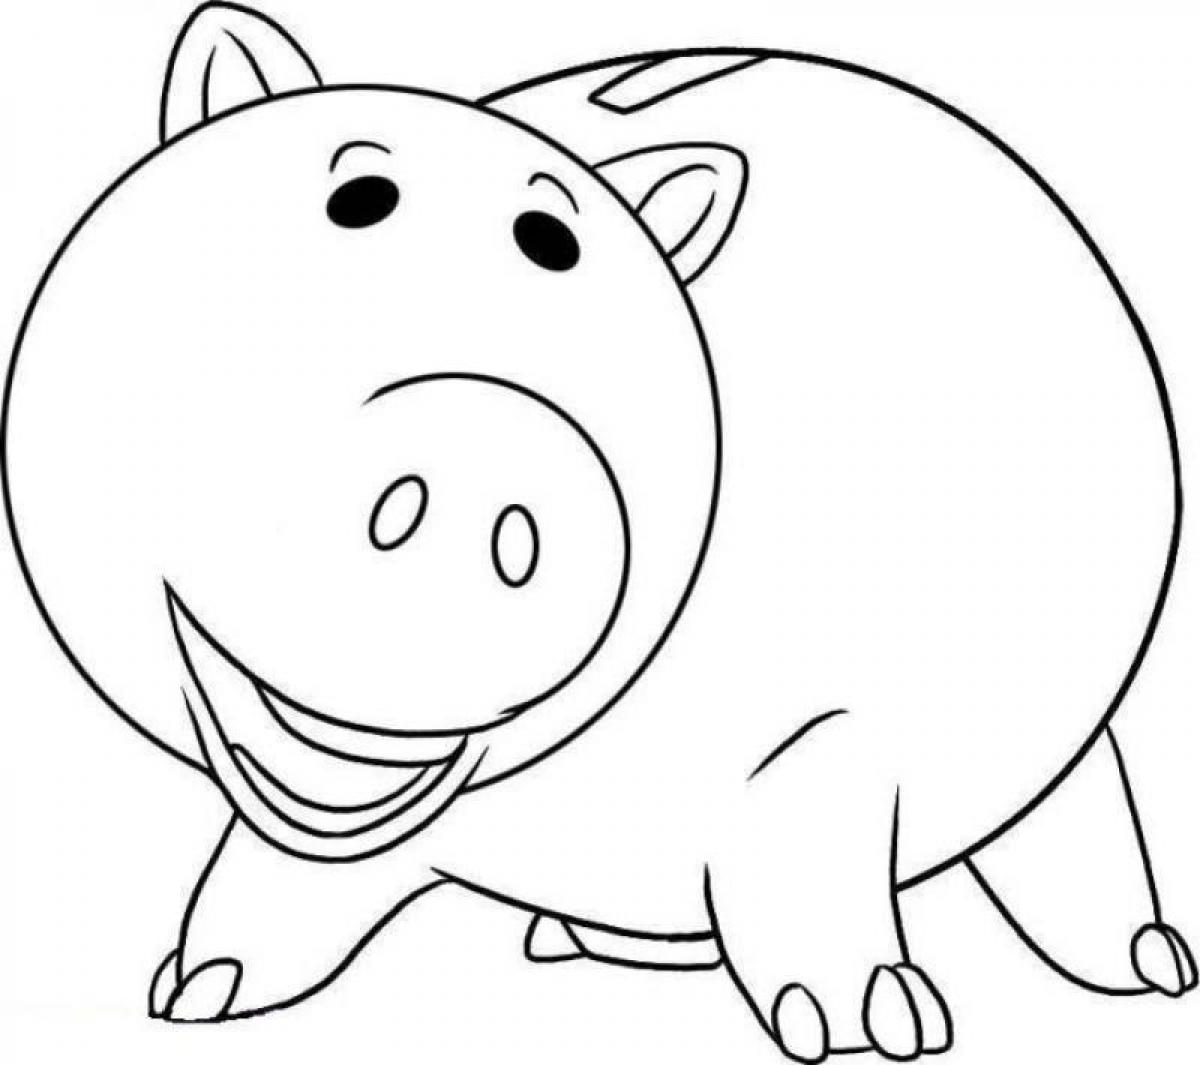 1200x1065 Toy Story Hamm Character Free Coloring Page Disney, Kids, Toy